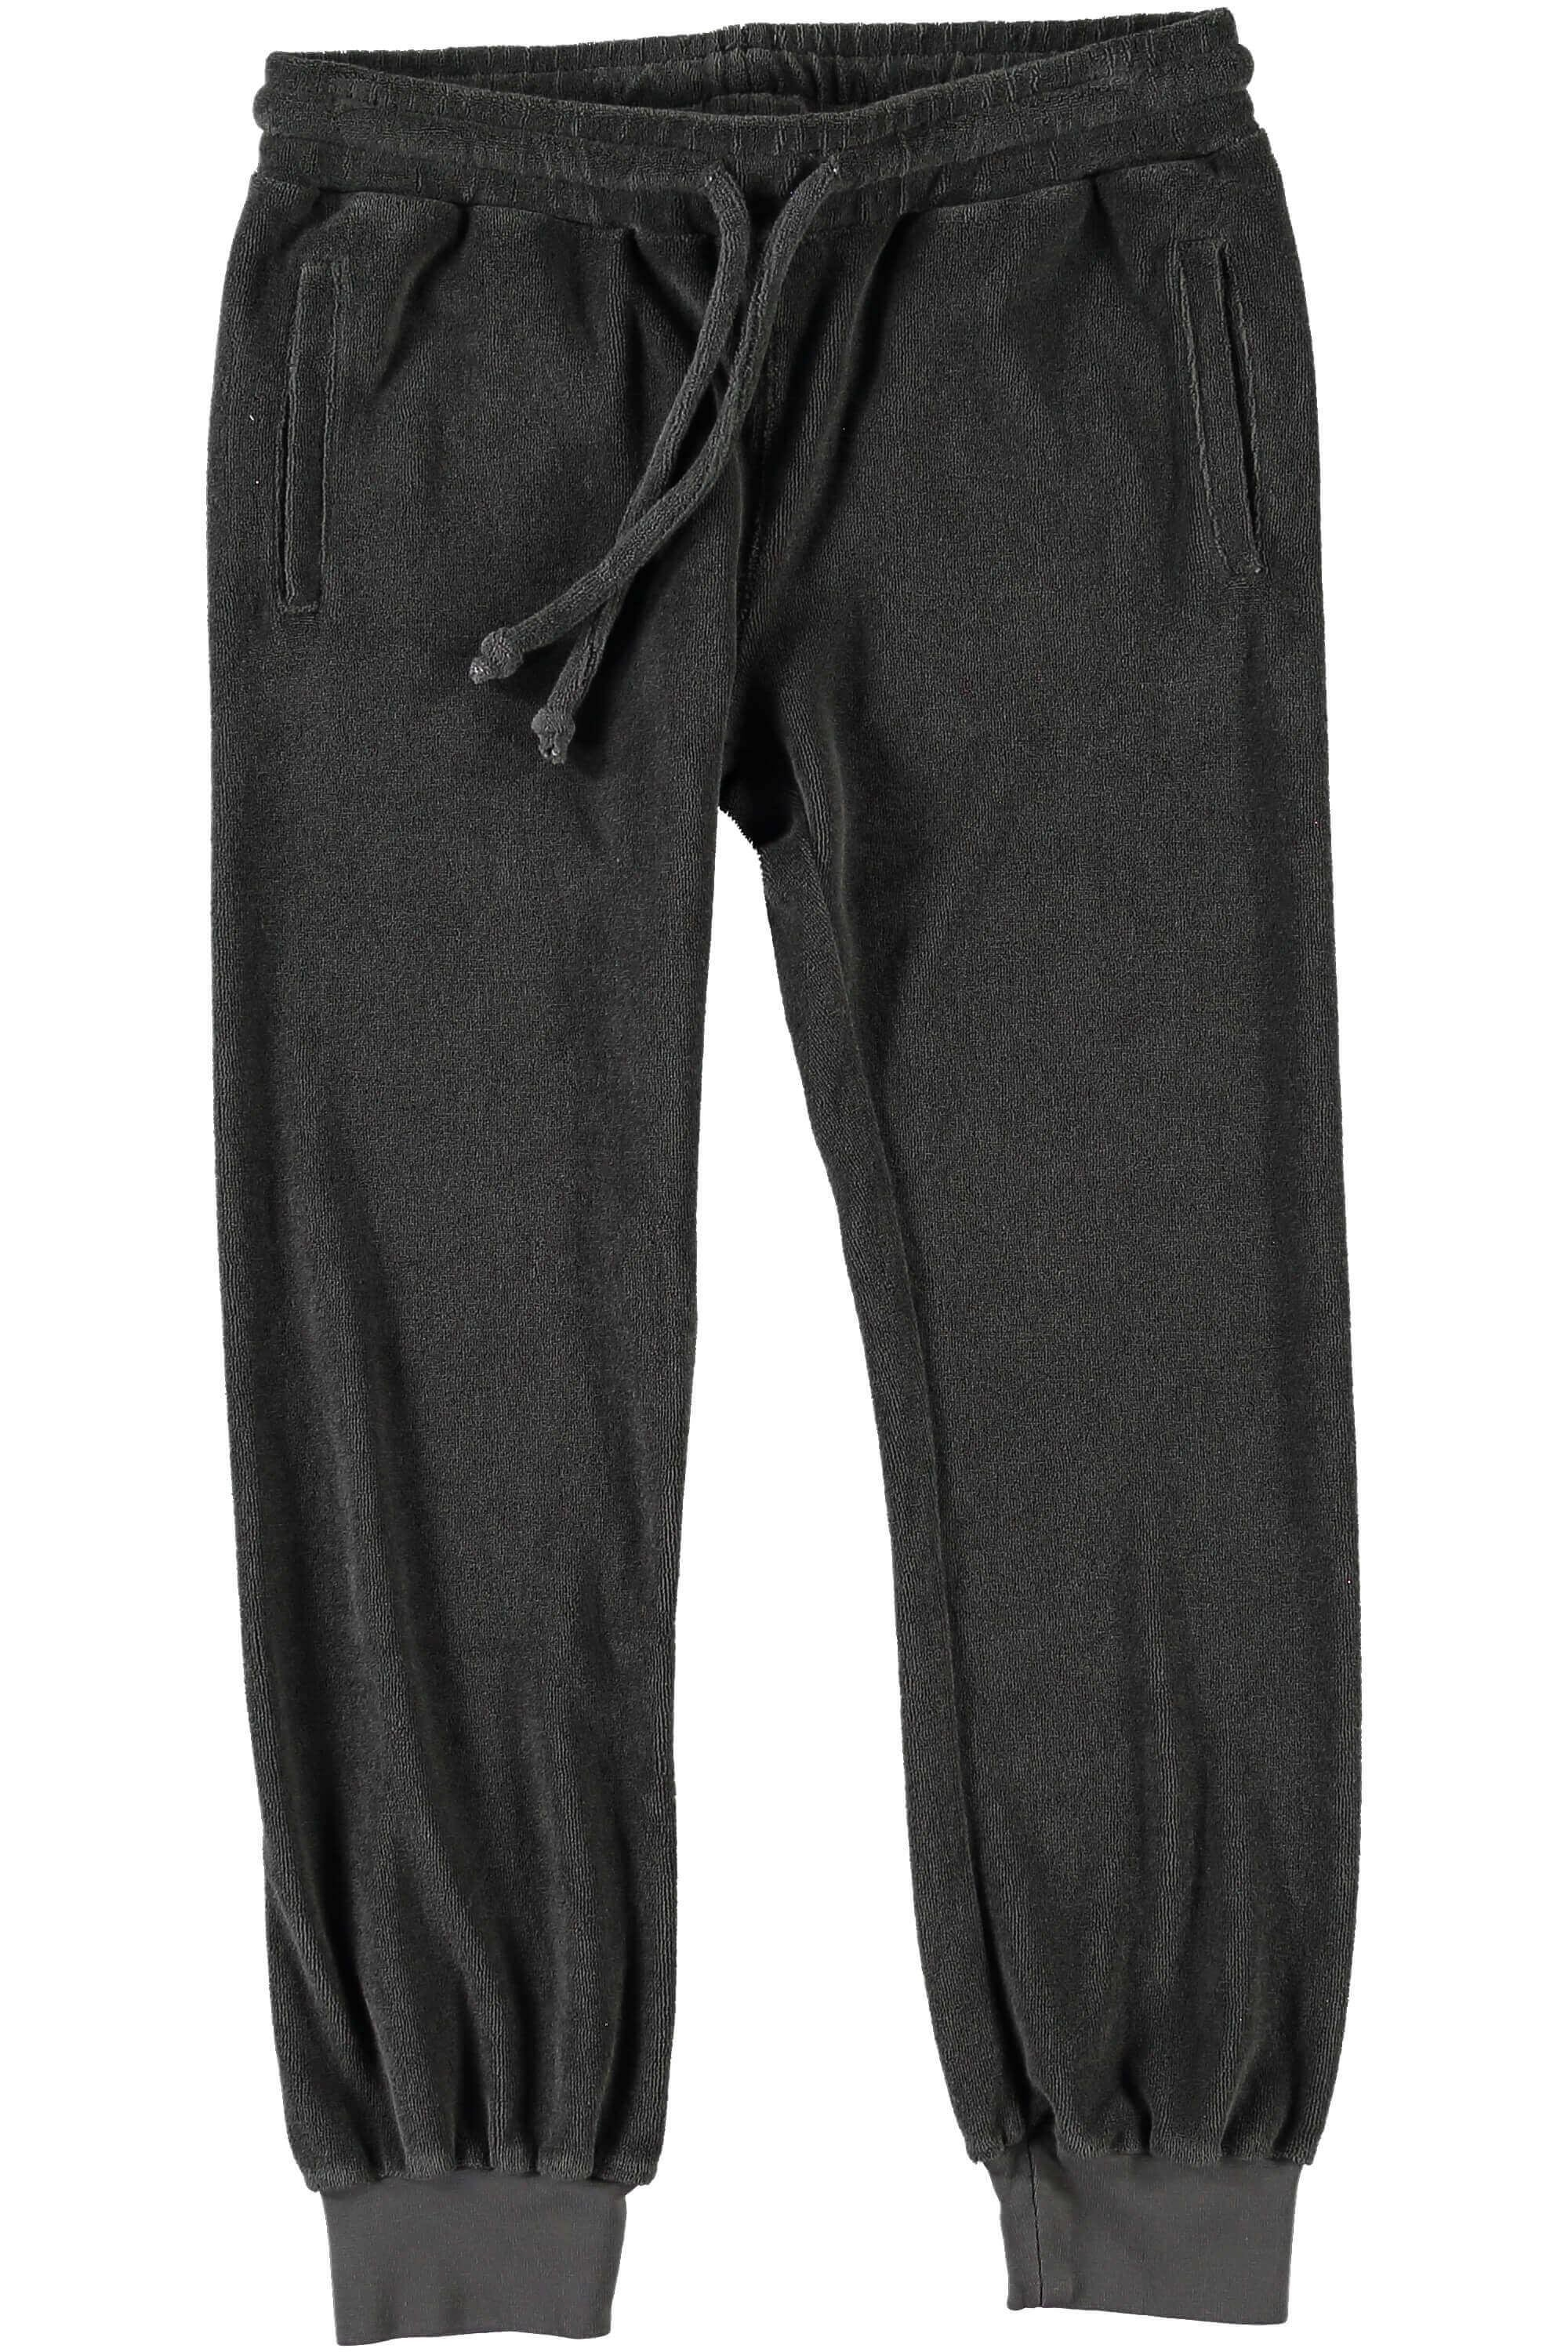 TERRYCLOTH YOUTH MILLIE SWEATS - THUNDERSTORM